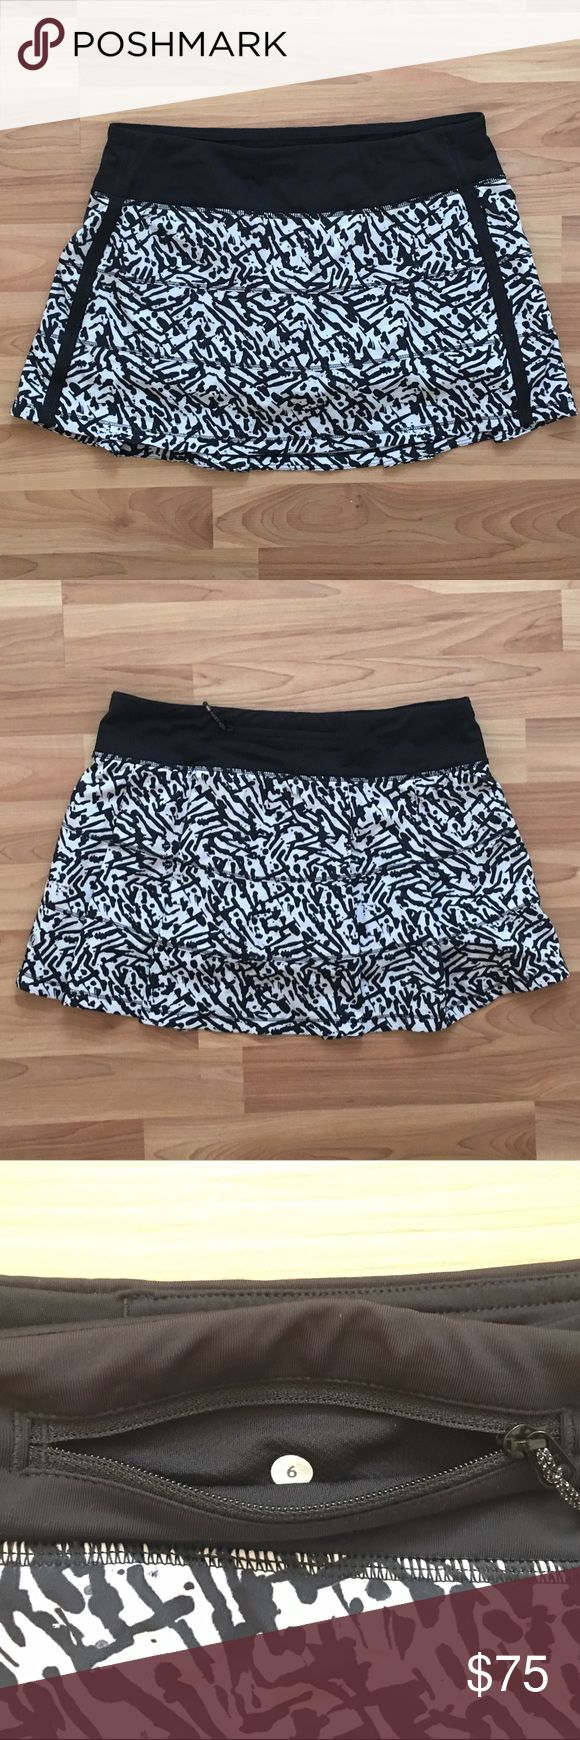 Lululemon Pace Rival Rare Print Skirt Size 6 EUC Lululemon Rival Skirt- RARE brushed animal print. Built- in shorts with silicone grip on the hem. Swift ultra fabric is lightweight, sweat-wicking and has a 4-way stretch. Light luxtreme fabric waistband will not dig. Back zipper pocket and two waistband gel pockets for mid-race snack. Back venting adds breathability and pleats give you room to move! Size 6, hang tag is not attached. Excellent condition- only worn a few times! lululemon…